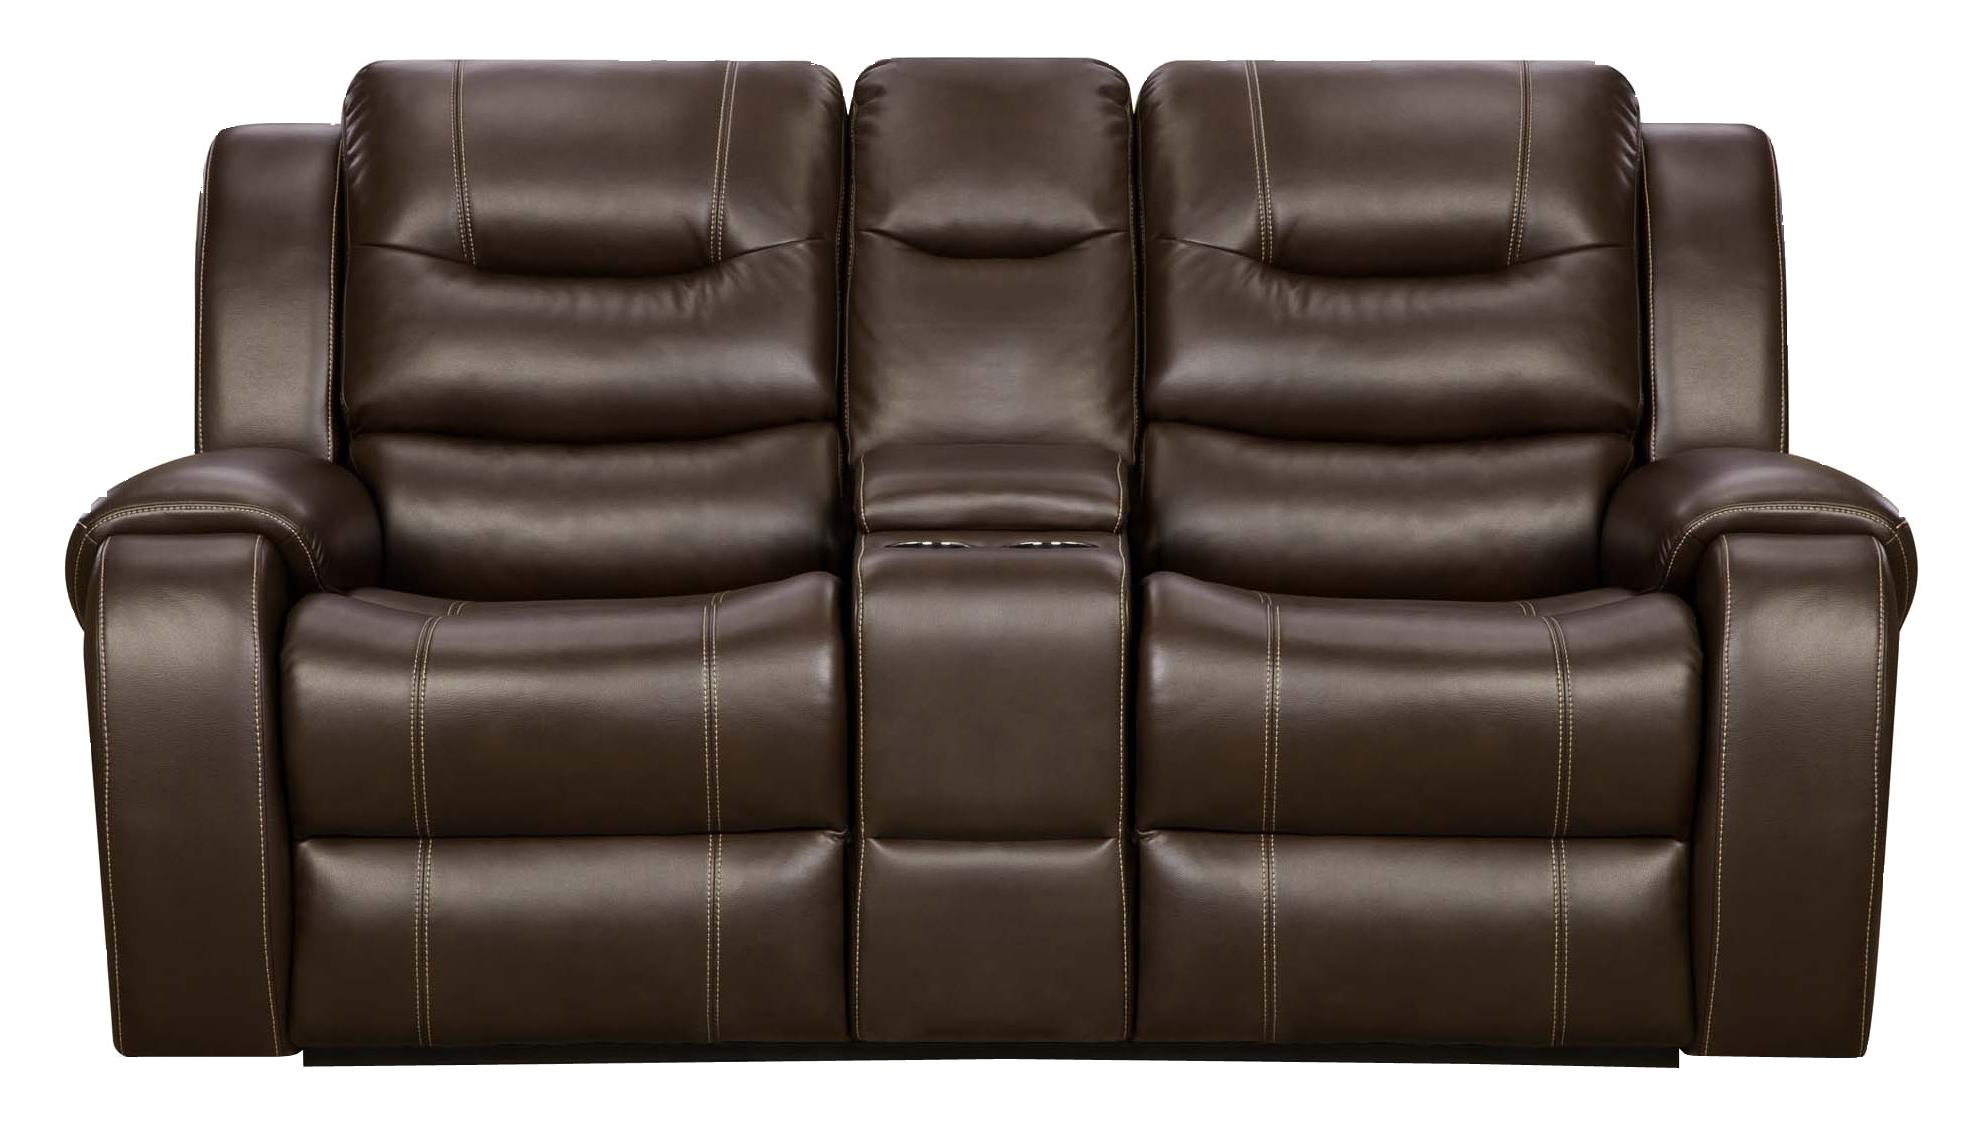 Madison Reclining Console Loveseat at Belfort Furniture